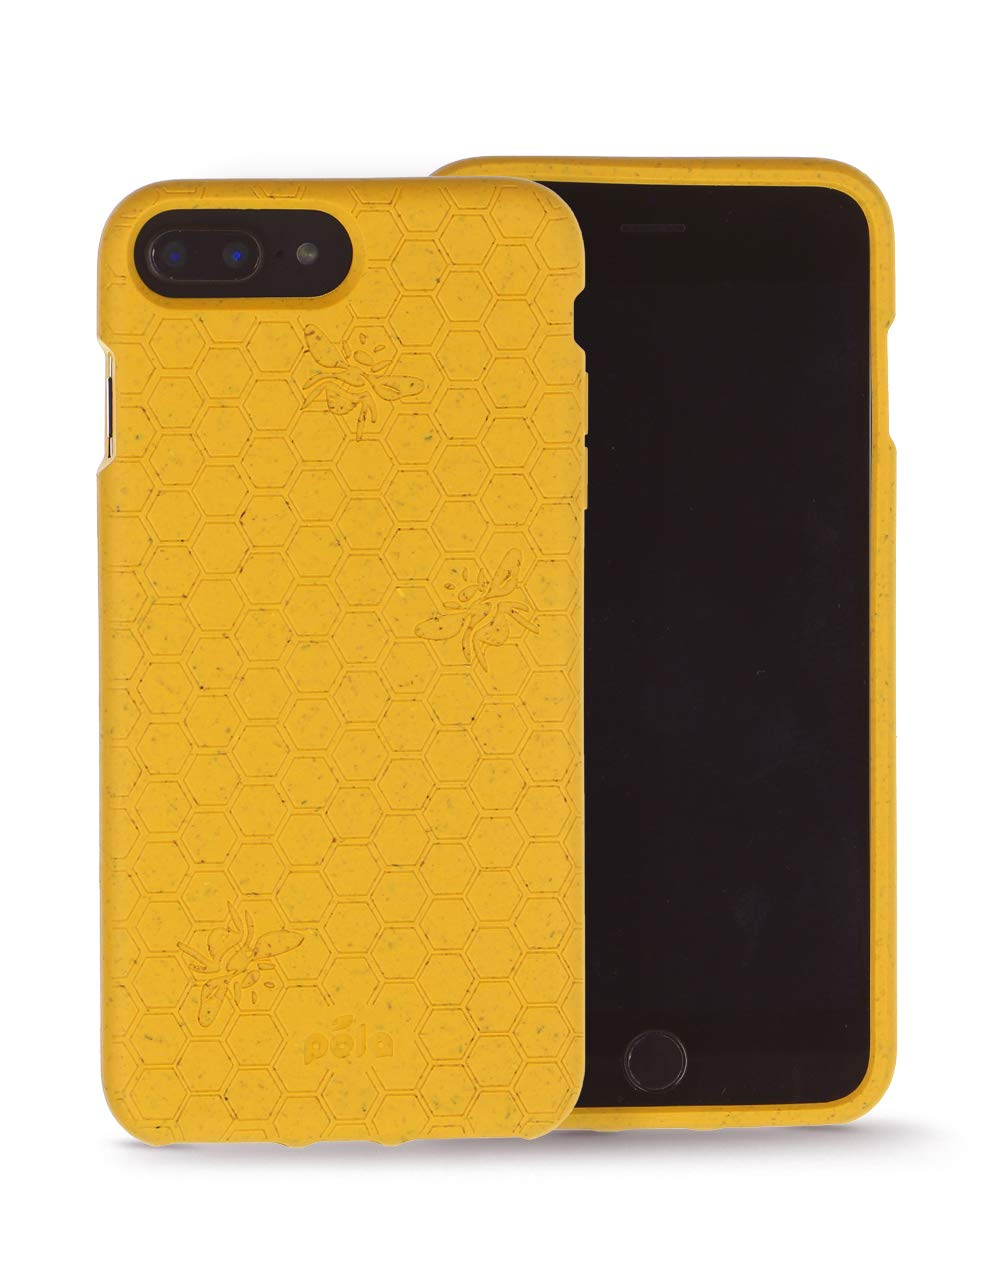 Pela: Phone Case for iPhone 6/6s/7/8/SE - 100% Compostable and Biodegradable - Eco-Friendly - Made from Plants (Plus Honey Bee)